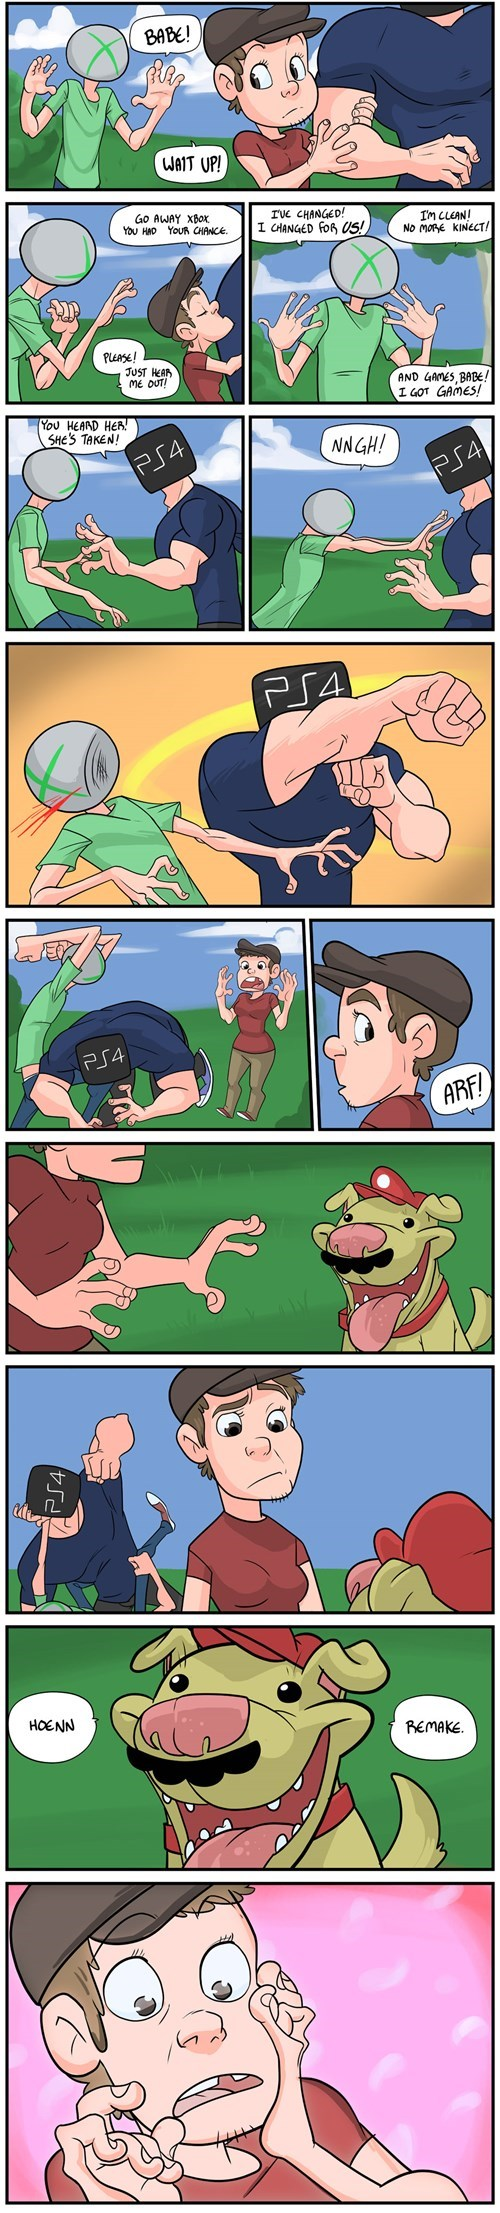 gaming gamers video games web comics hoenn remake - 8247894016